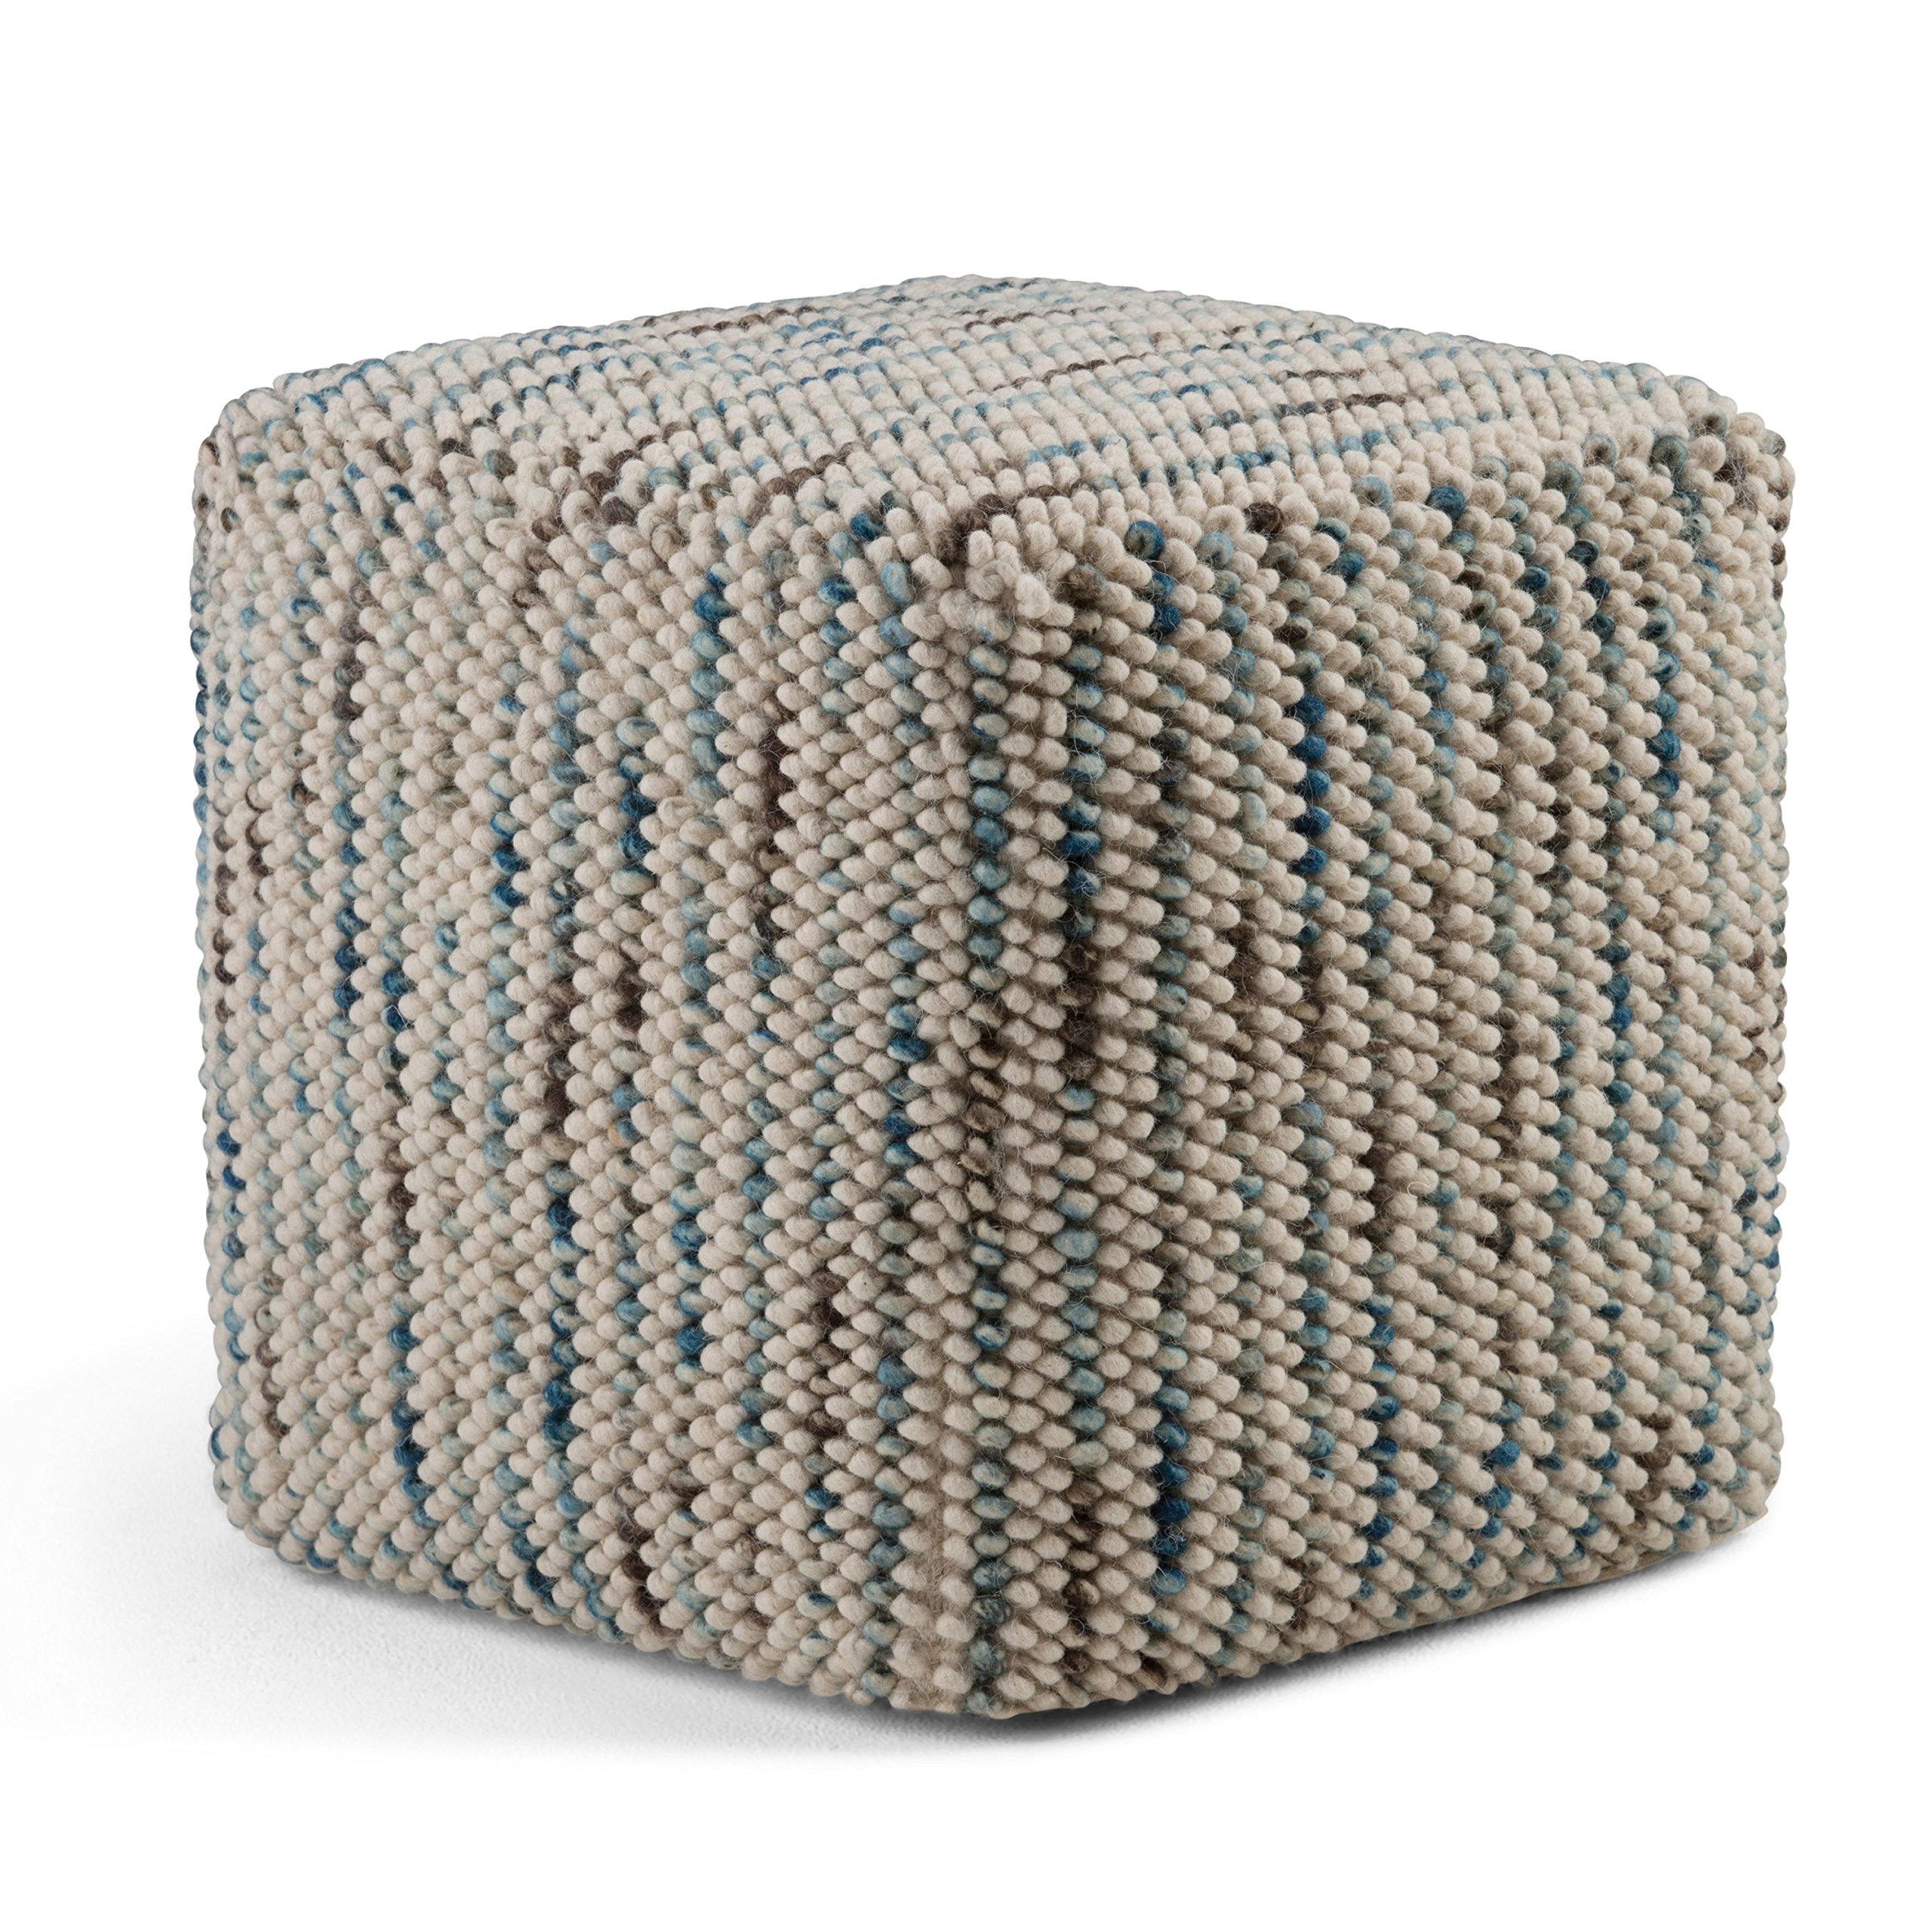 Simpli Home AXCPF-01 Zoey Transitional Cube Woven Pouf in Multi Color Cotton and Wool, Fully Assembled by Simpli Home